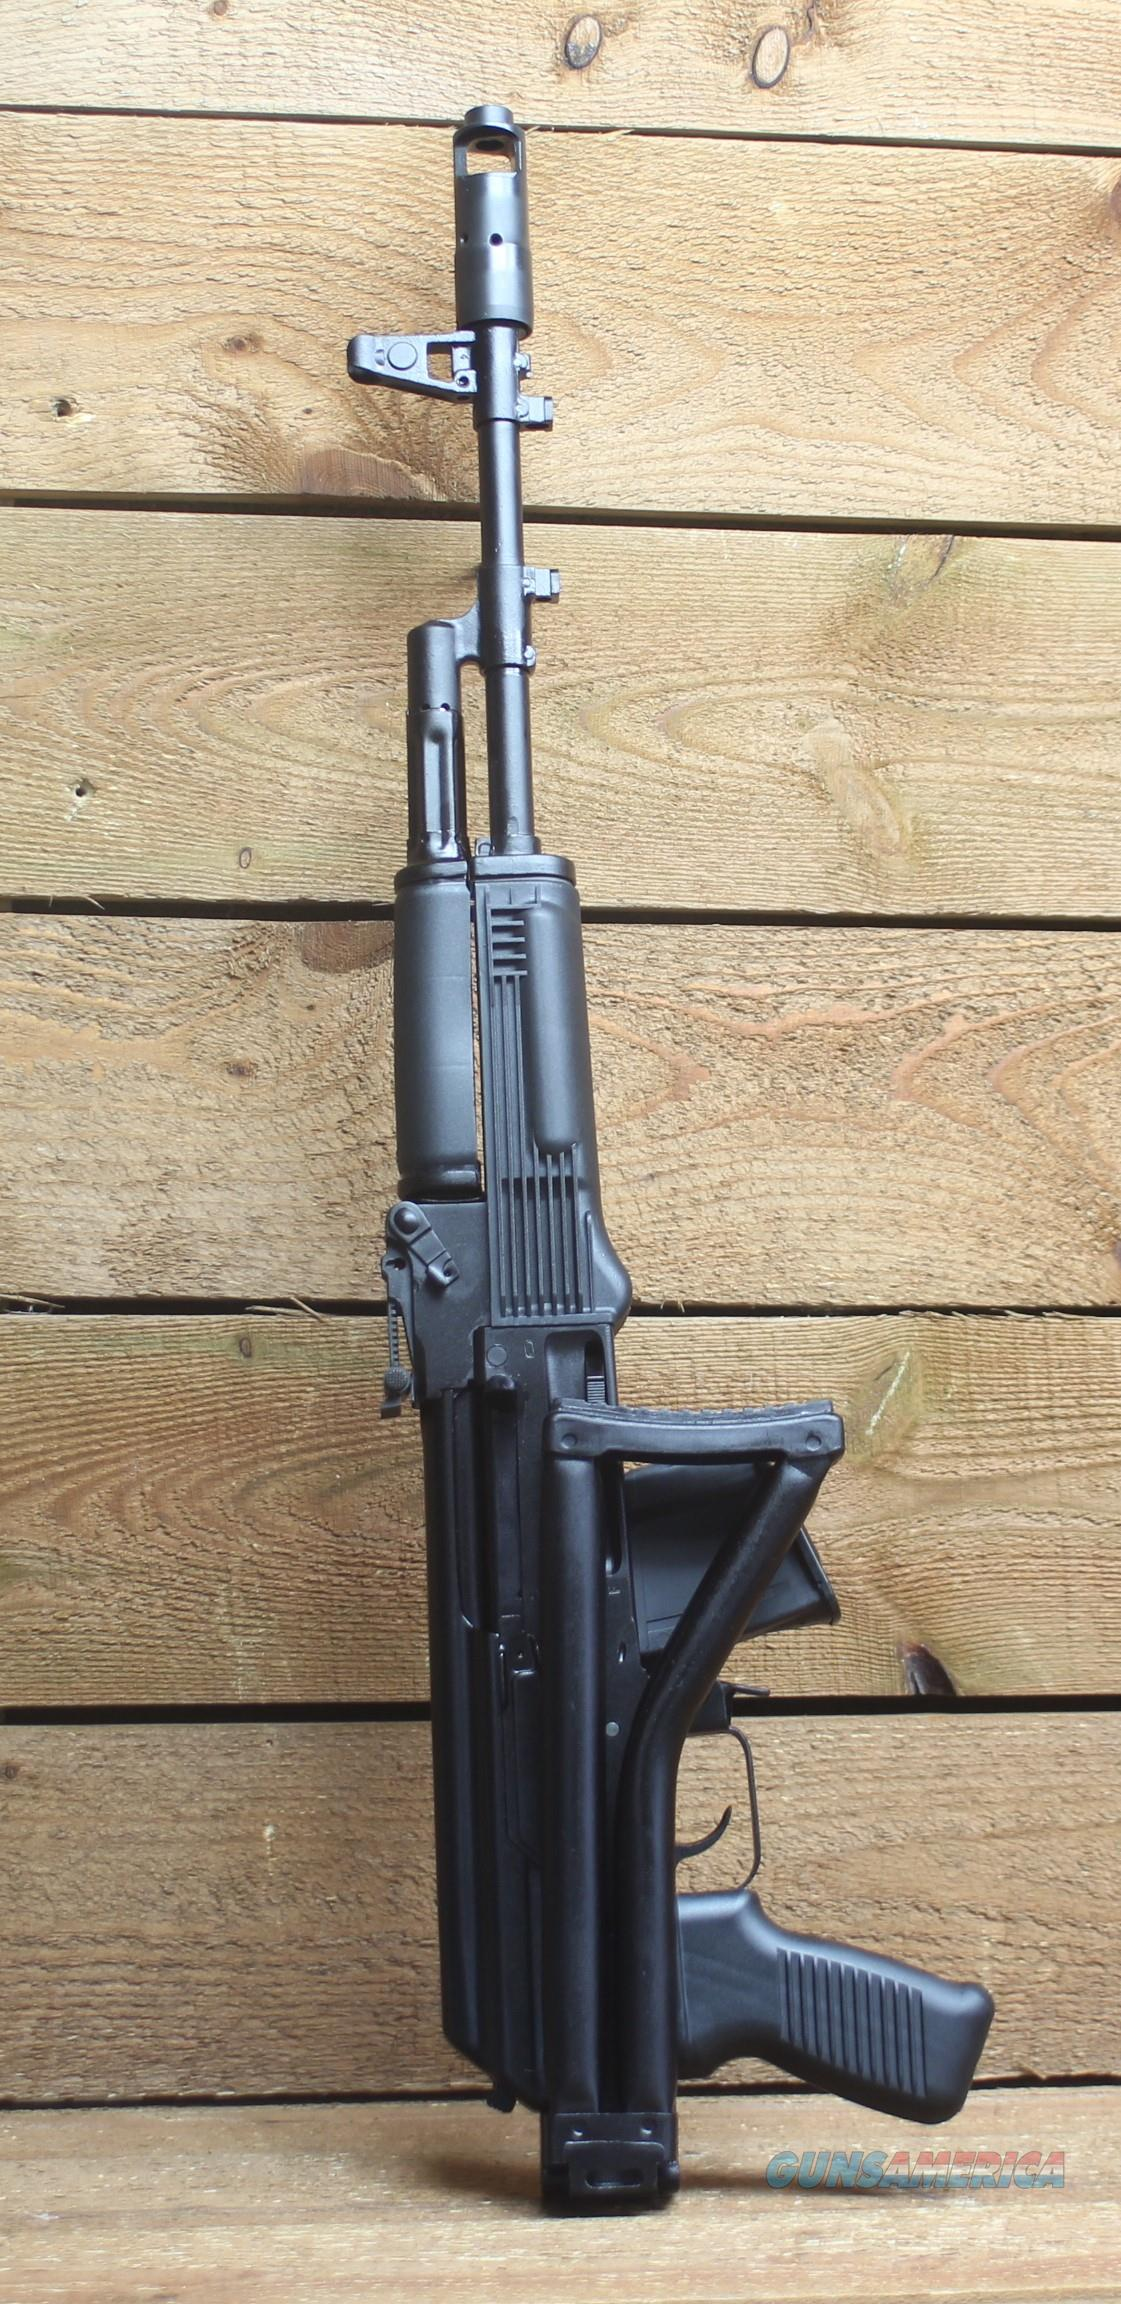 Arsenal SAM7SF-84 7 62x39mm UNDERFOLDER milled forged receiveR AK-47 /EASY  PAY $124